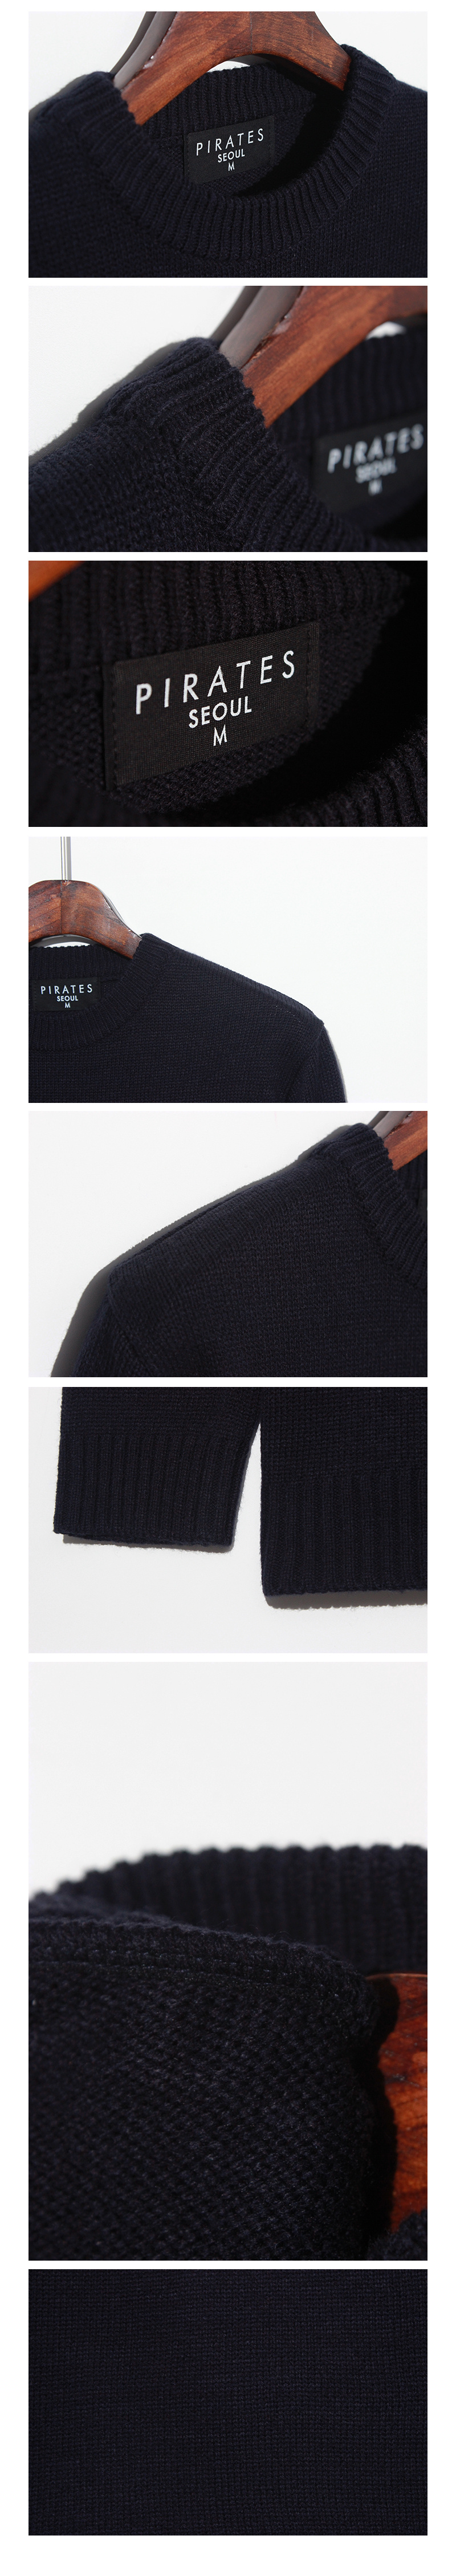 로맨틱 파이어리츠(ROMANTICPIRATES) ESSENTIAL CREWNECK KNIT SWEATER(NAVY)